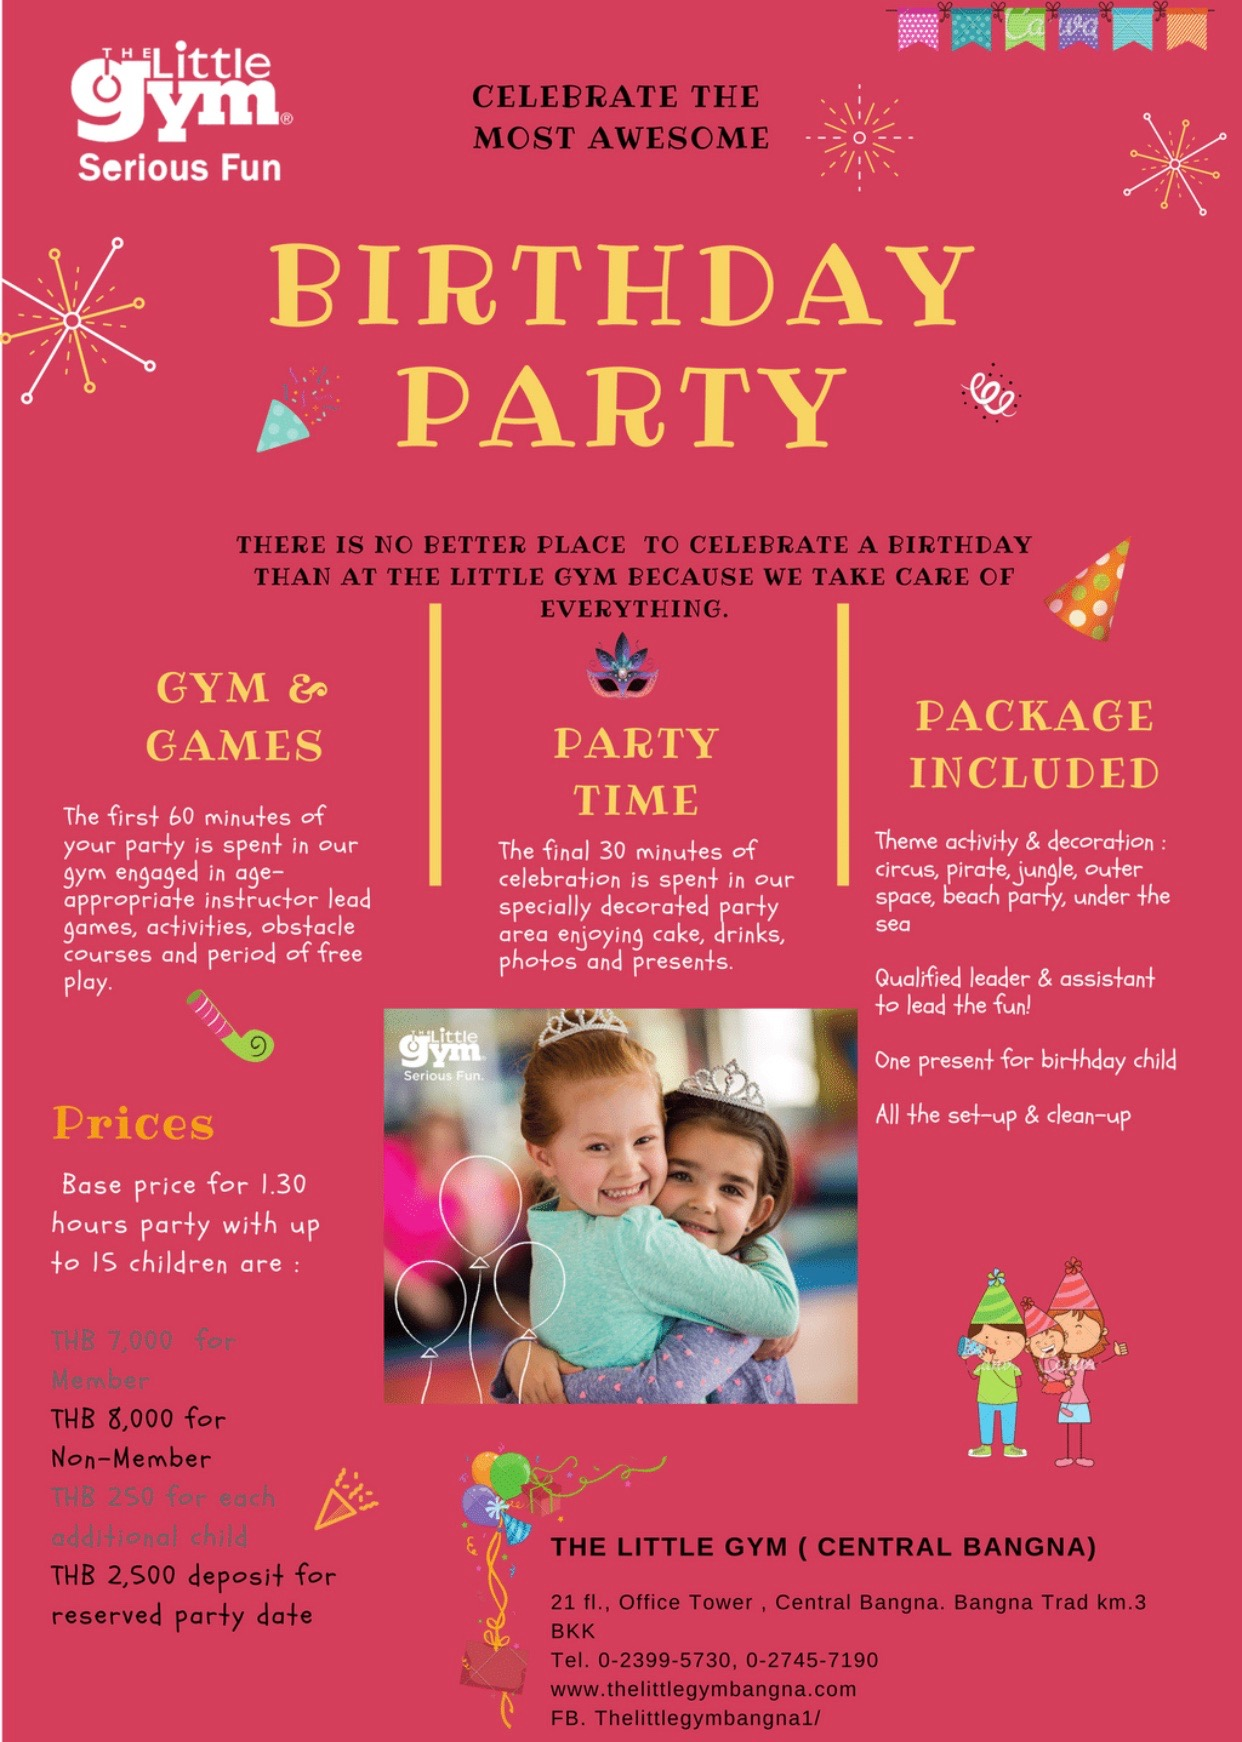 The Little Gym Birthday Party